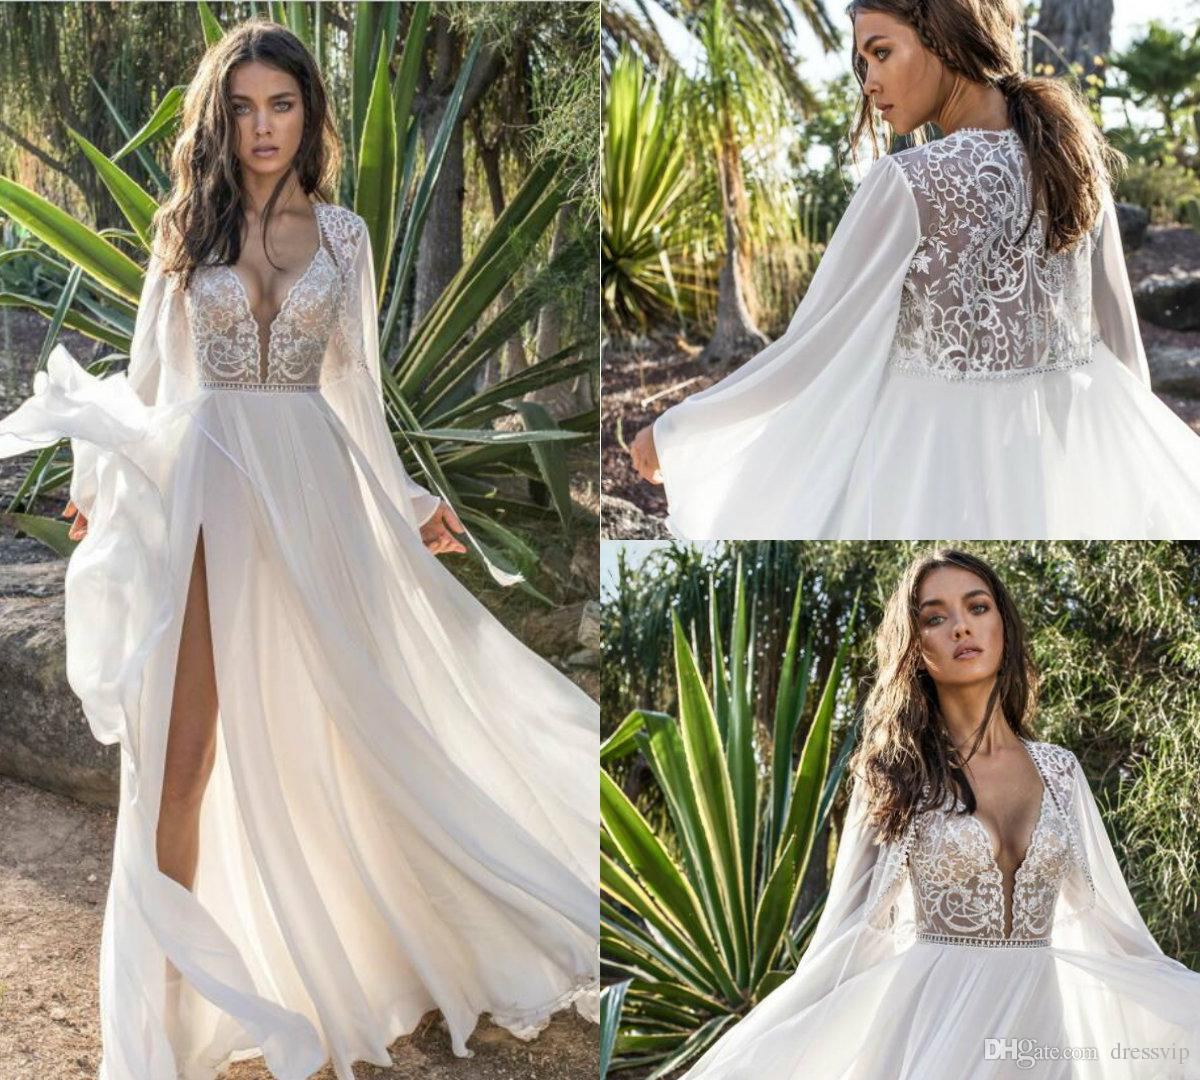 Discount 2018 Asaf Dadush Boho Wedding Dresses Spaghetti Lace Applique Sweep  Train Chiffon Sexy Beach Wedding Gowns Side Split Bohemian Bridal Dress  Wedding ... 3f820e2cf0db